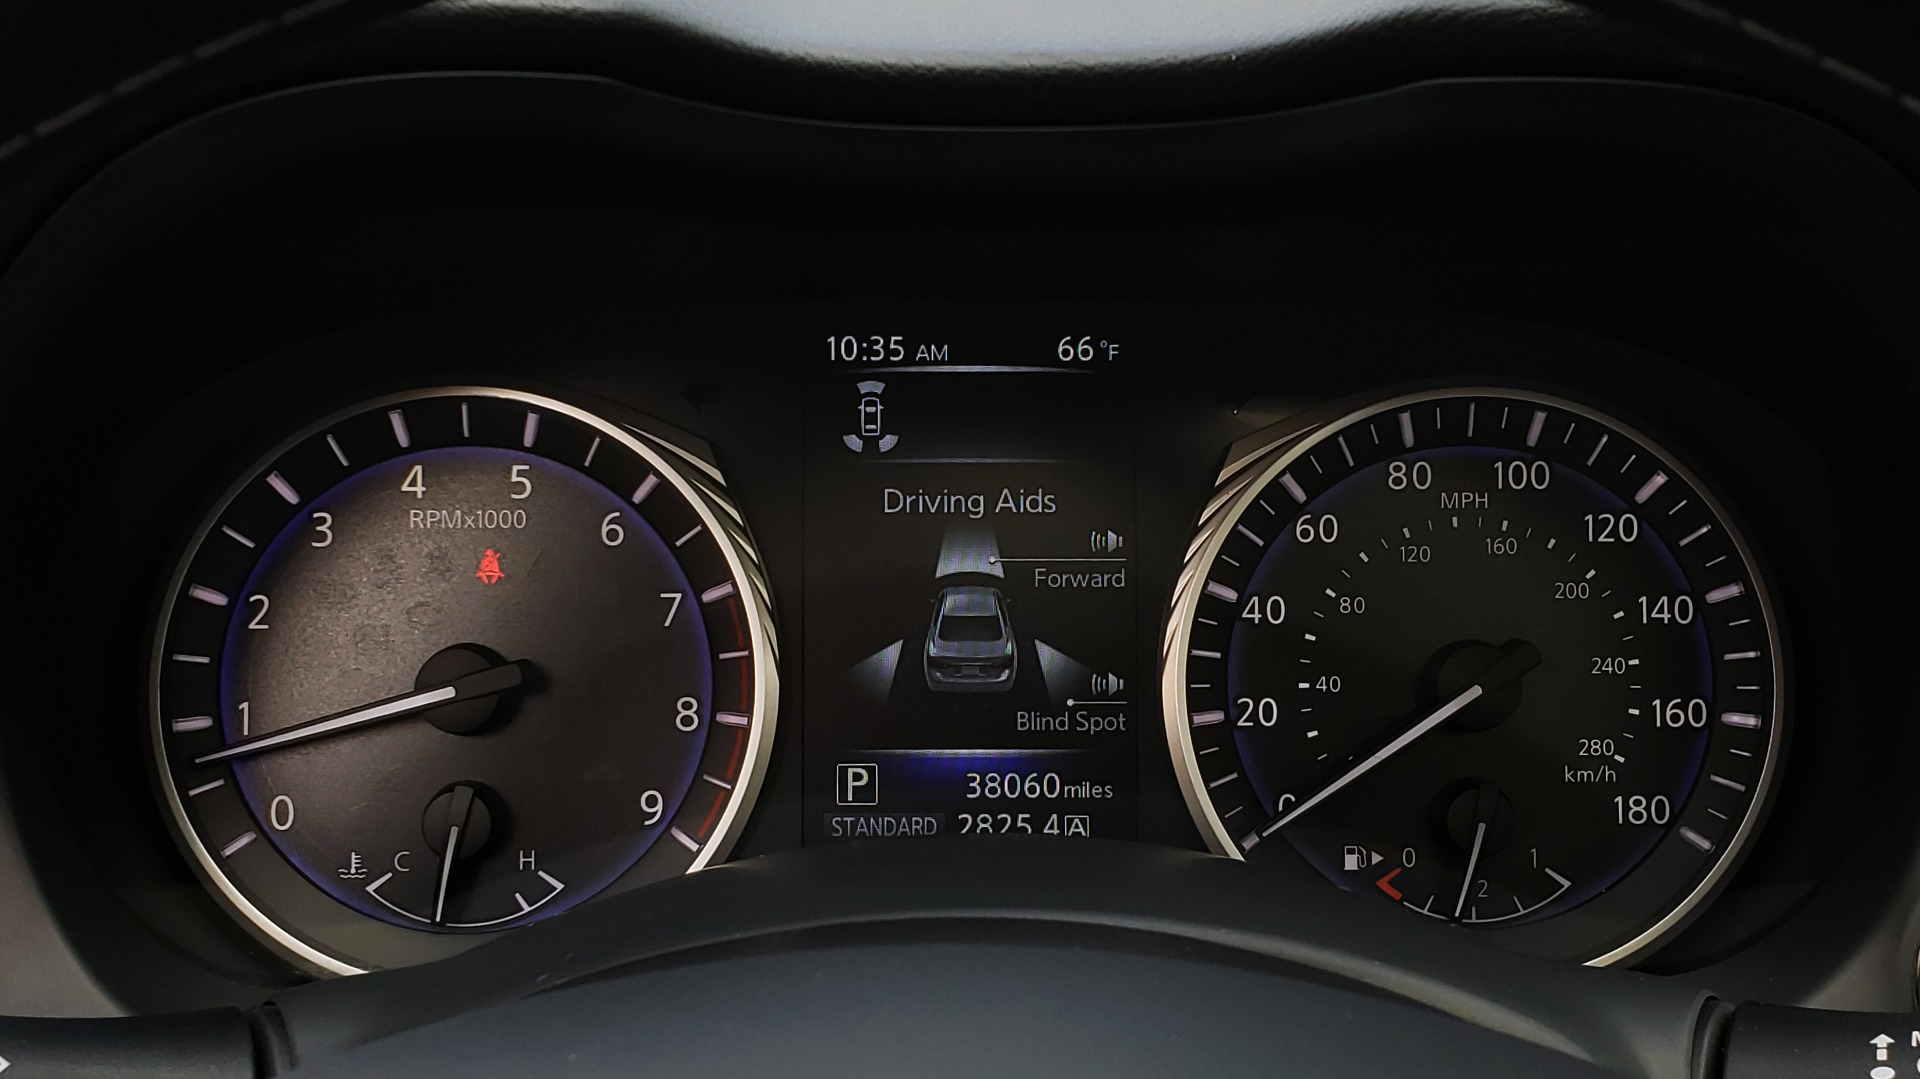 Used 2016 INFINITI Q50 3.0T RED SPORT 400 / NAV / PREM PLUS / BLIND SPOT / REARVIEW for sale $28,495 at Formula Imports in Charlotte NC 28227 41